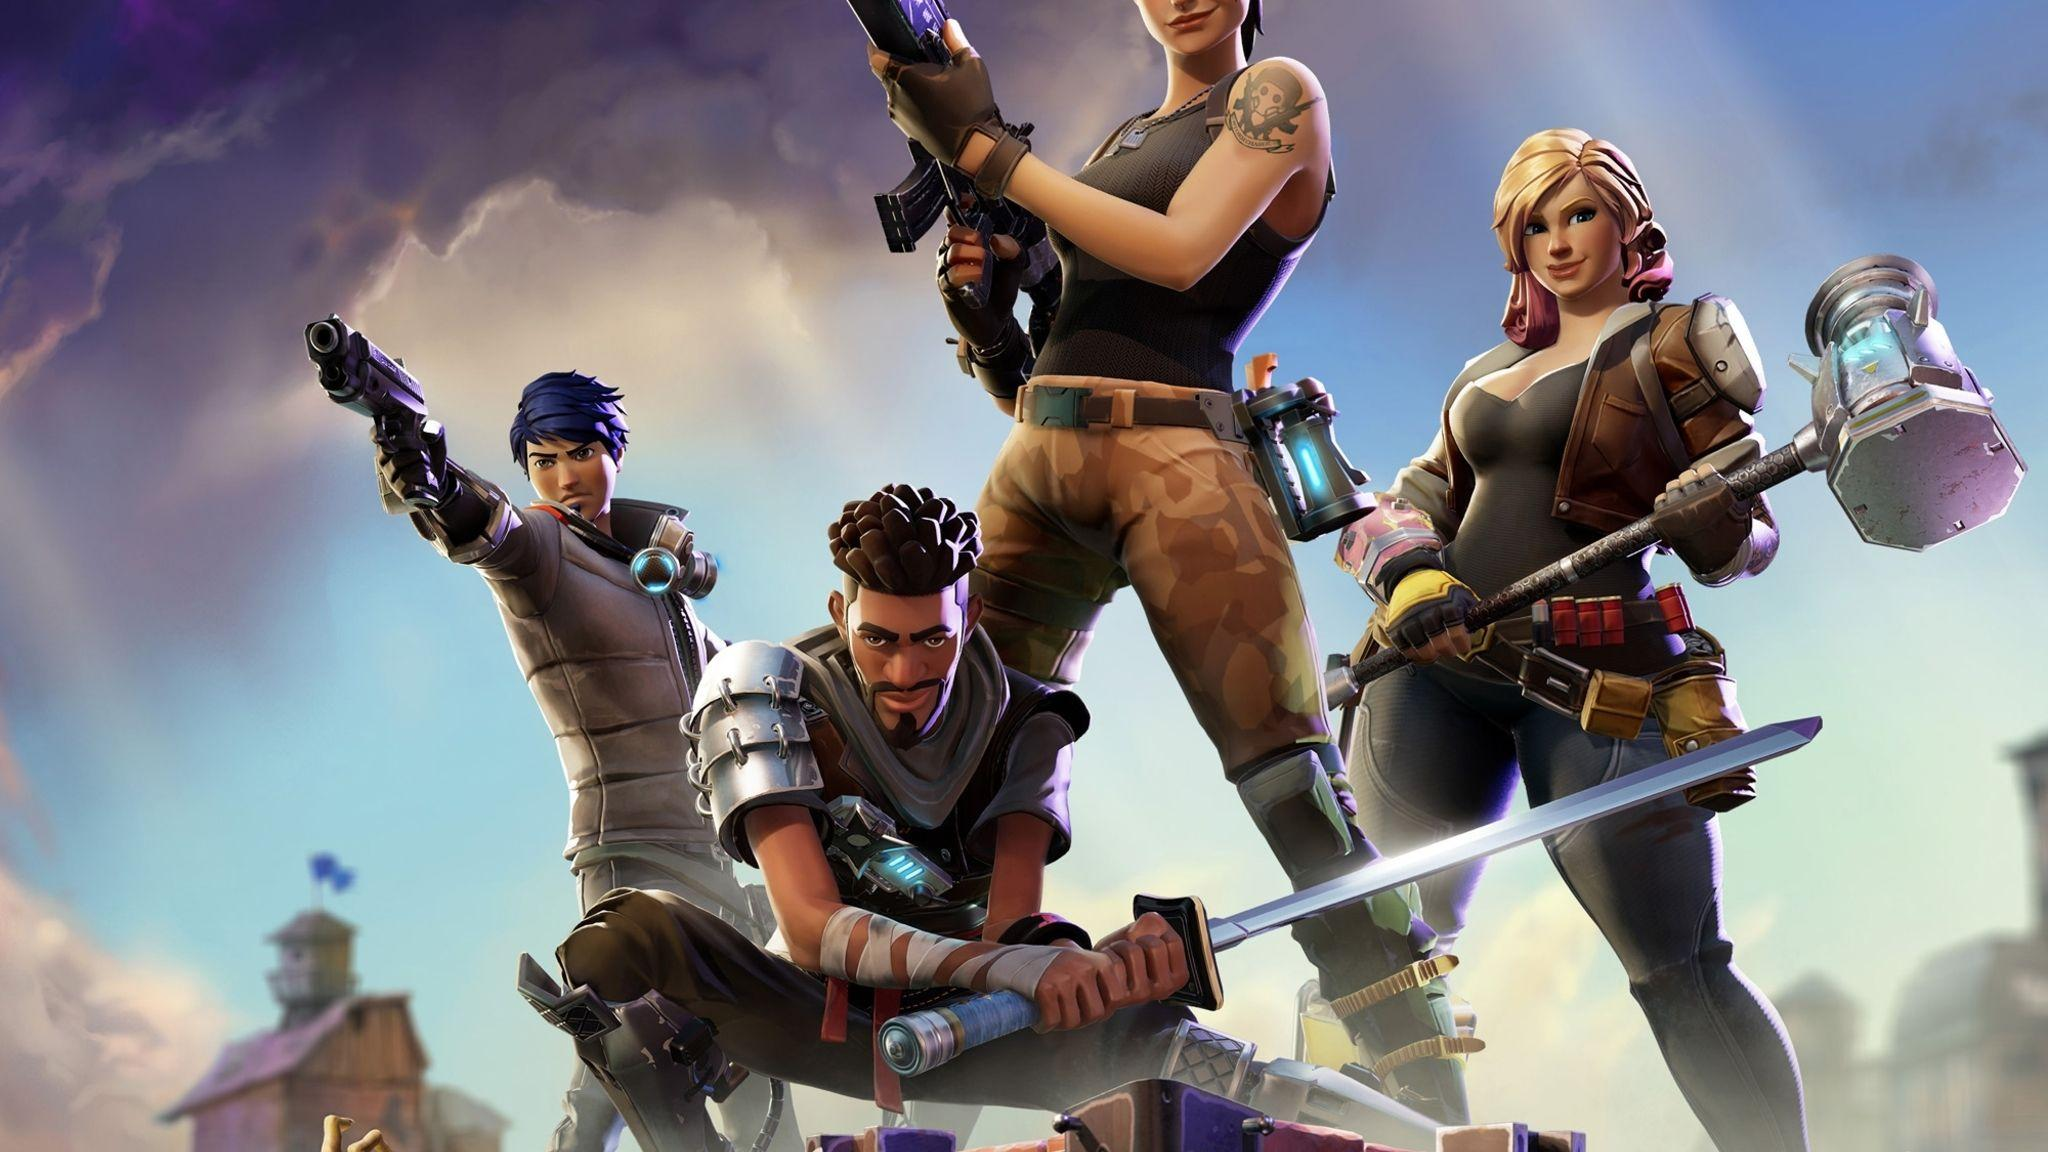 Download Fortnite HD 4k Wallpapers In 2048x1152 Screen Resolution